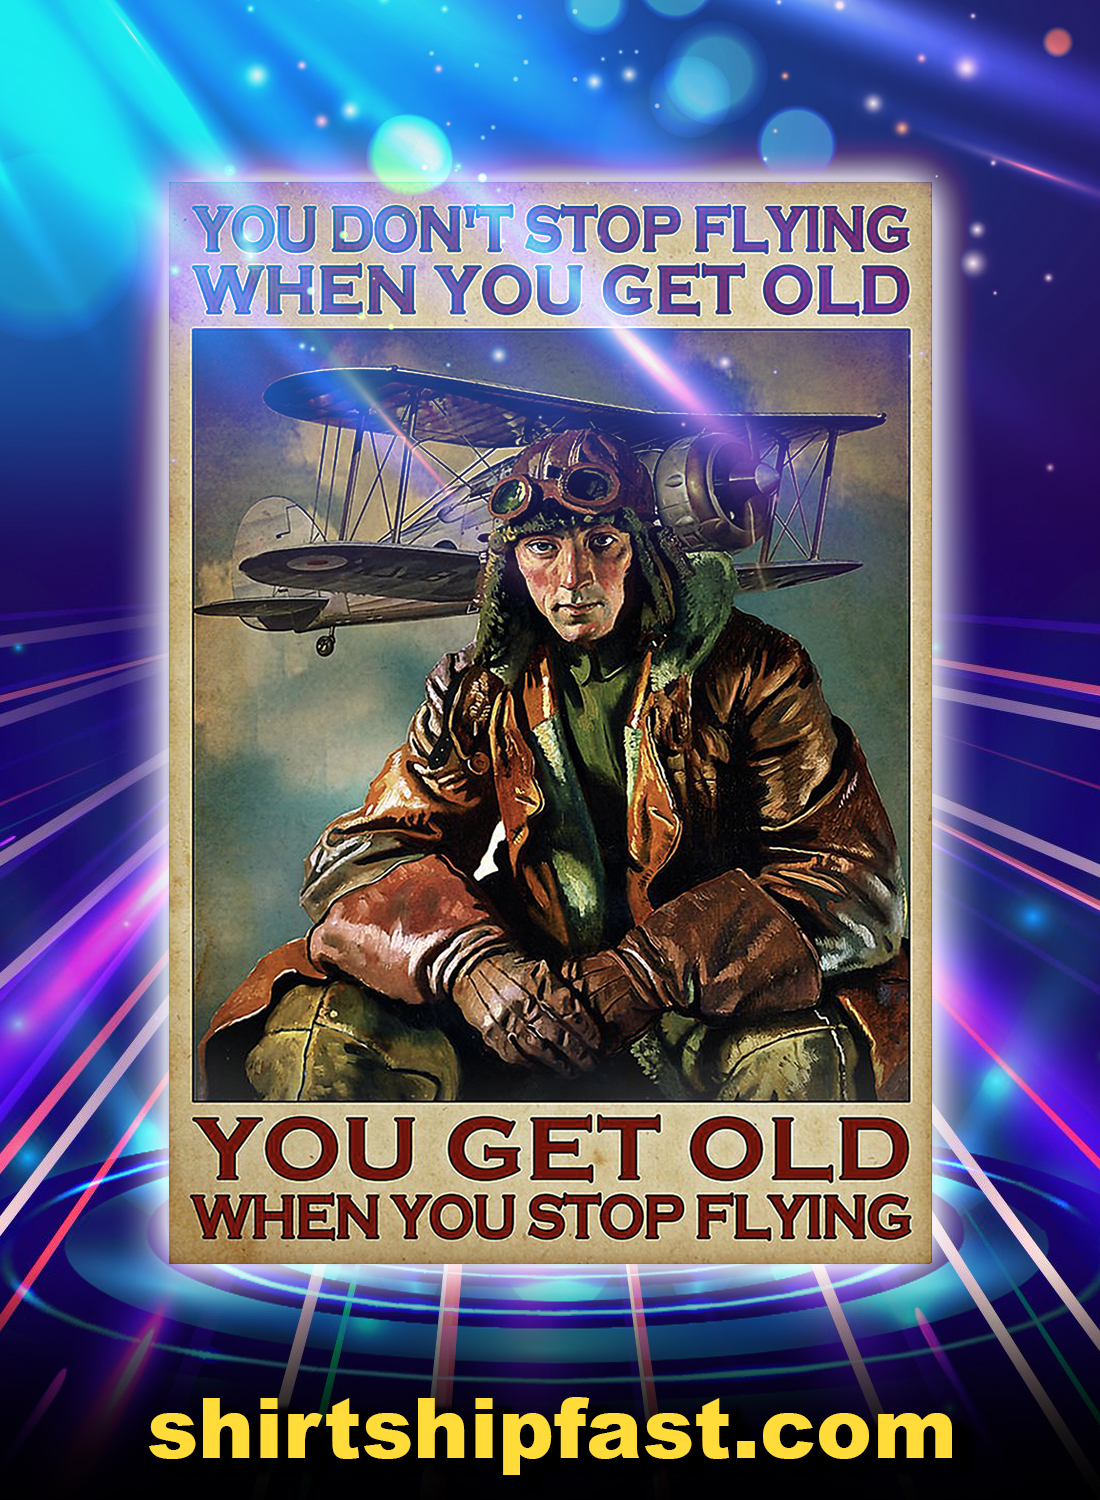 PILOT you don't stop flying when you get old poster - A4